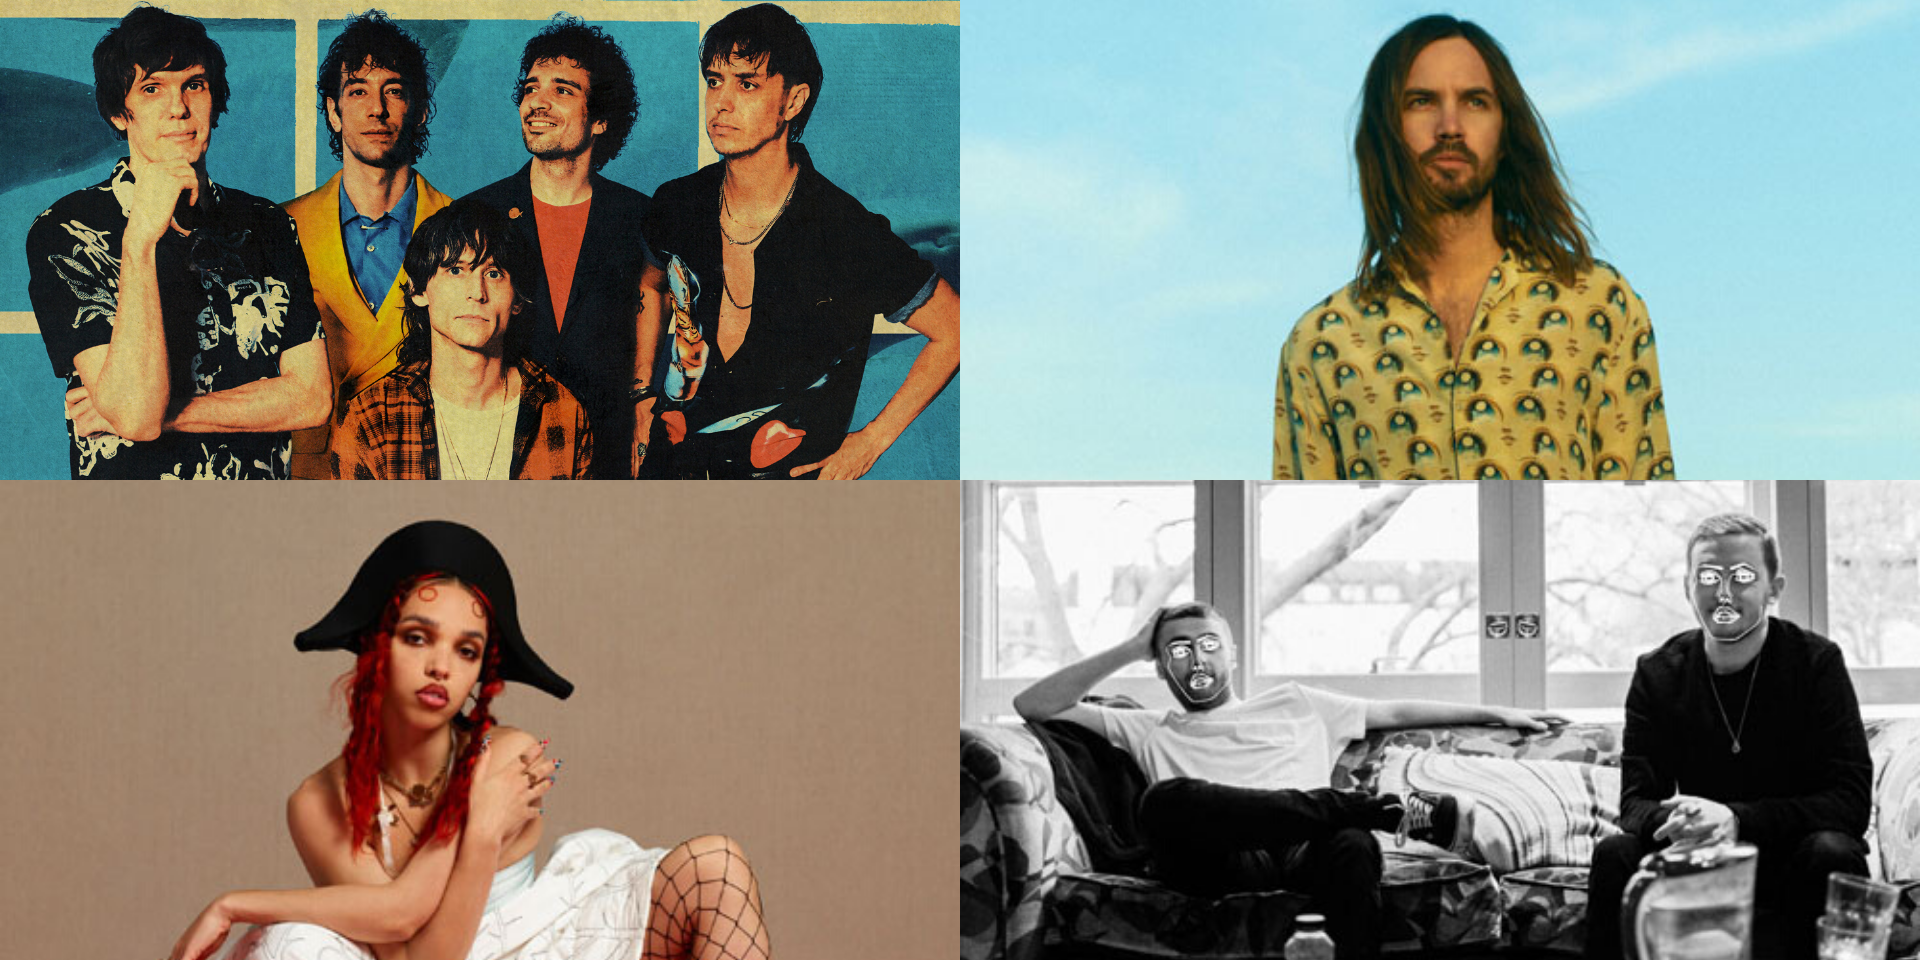 Fuji Rock Festival 2020 announces first wave lineup - The Strokes, Tame Impala, Disclosure, FKA Twigs, and more